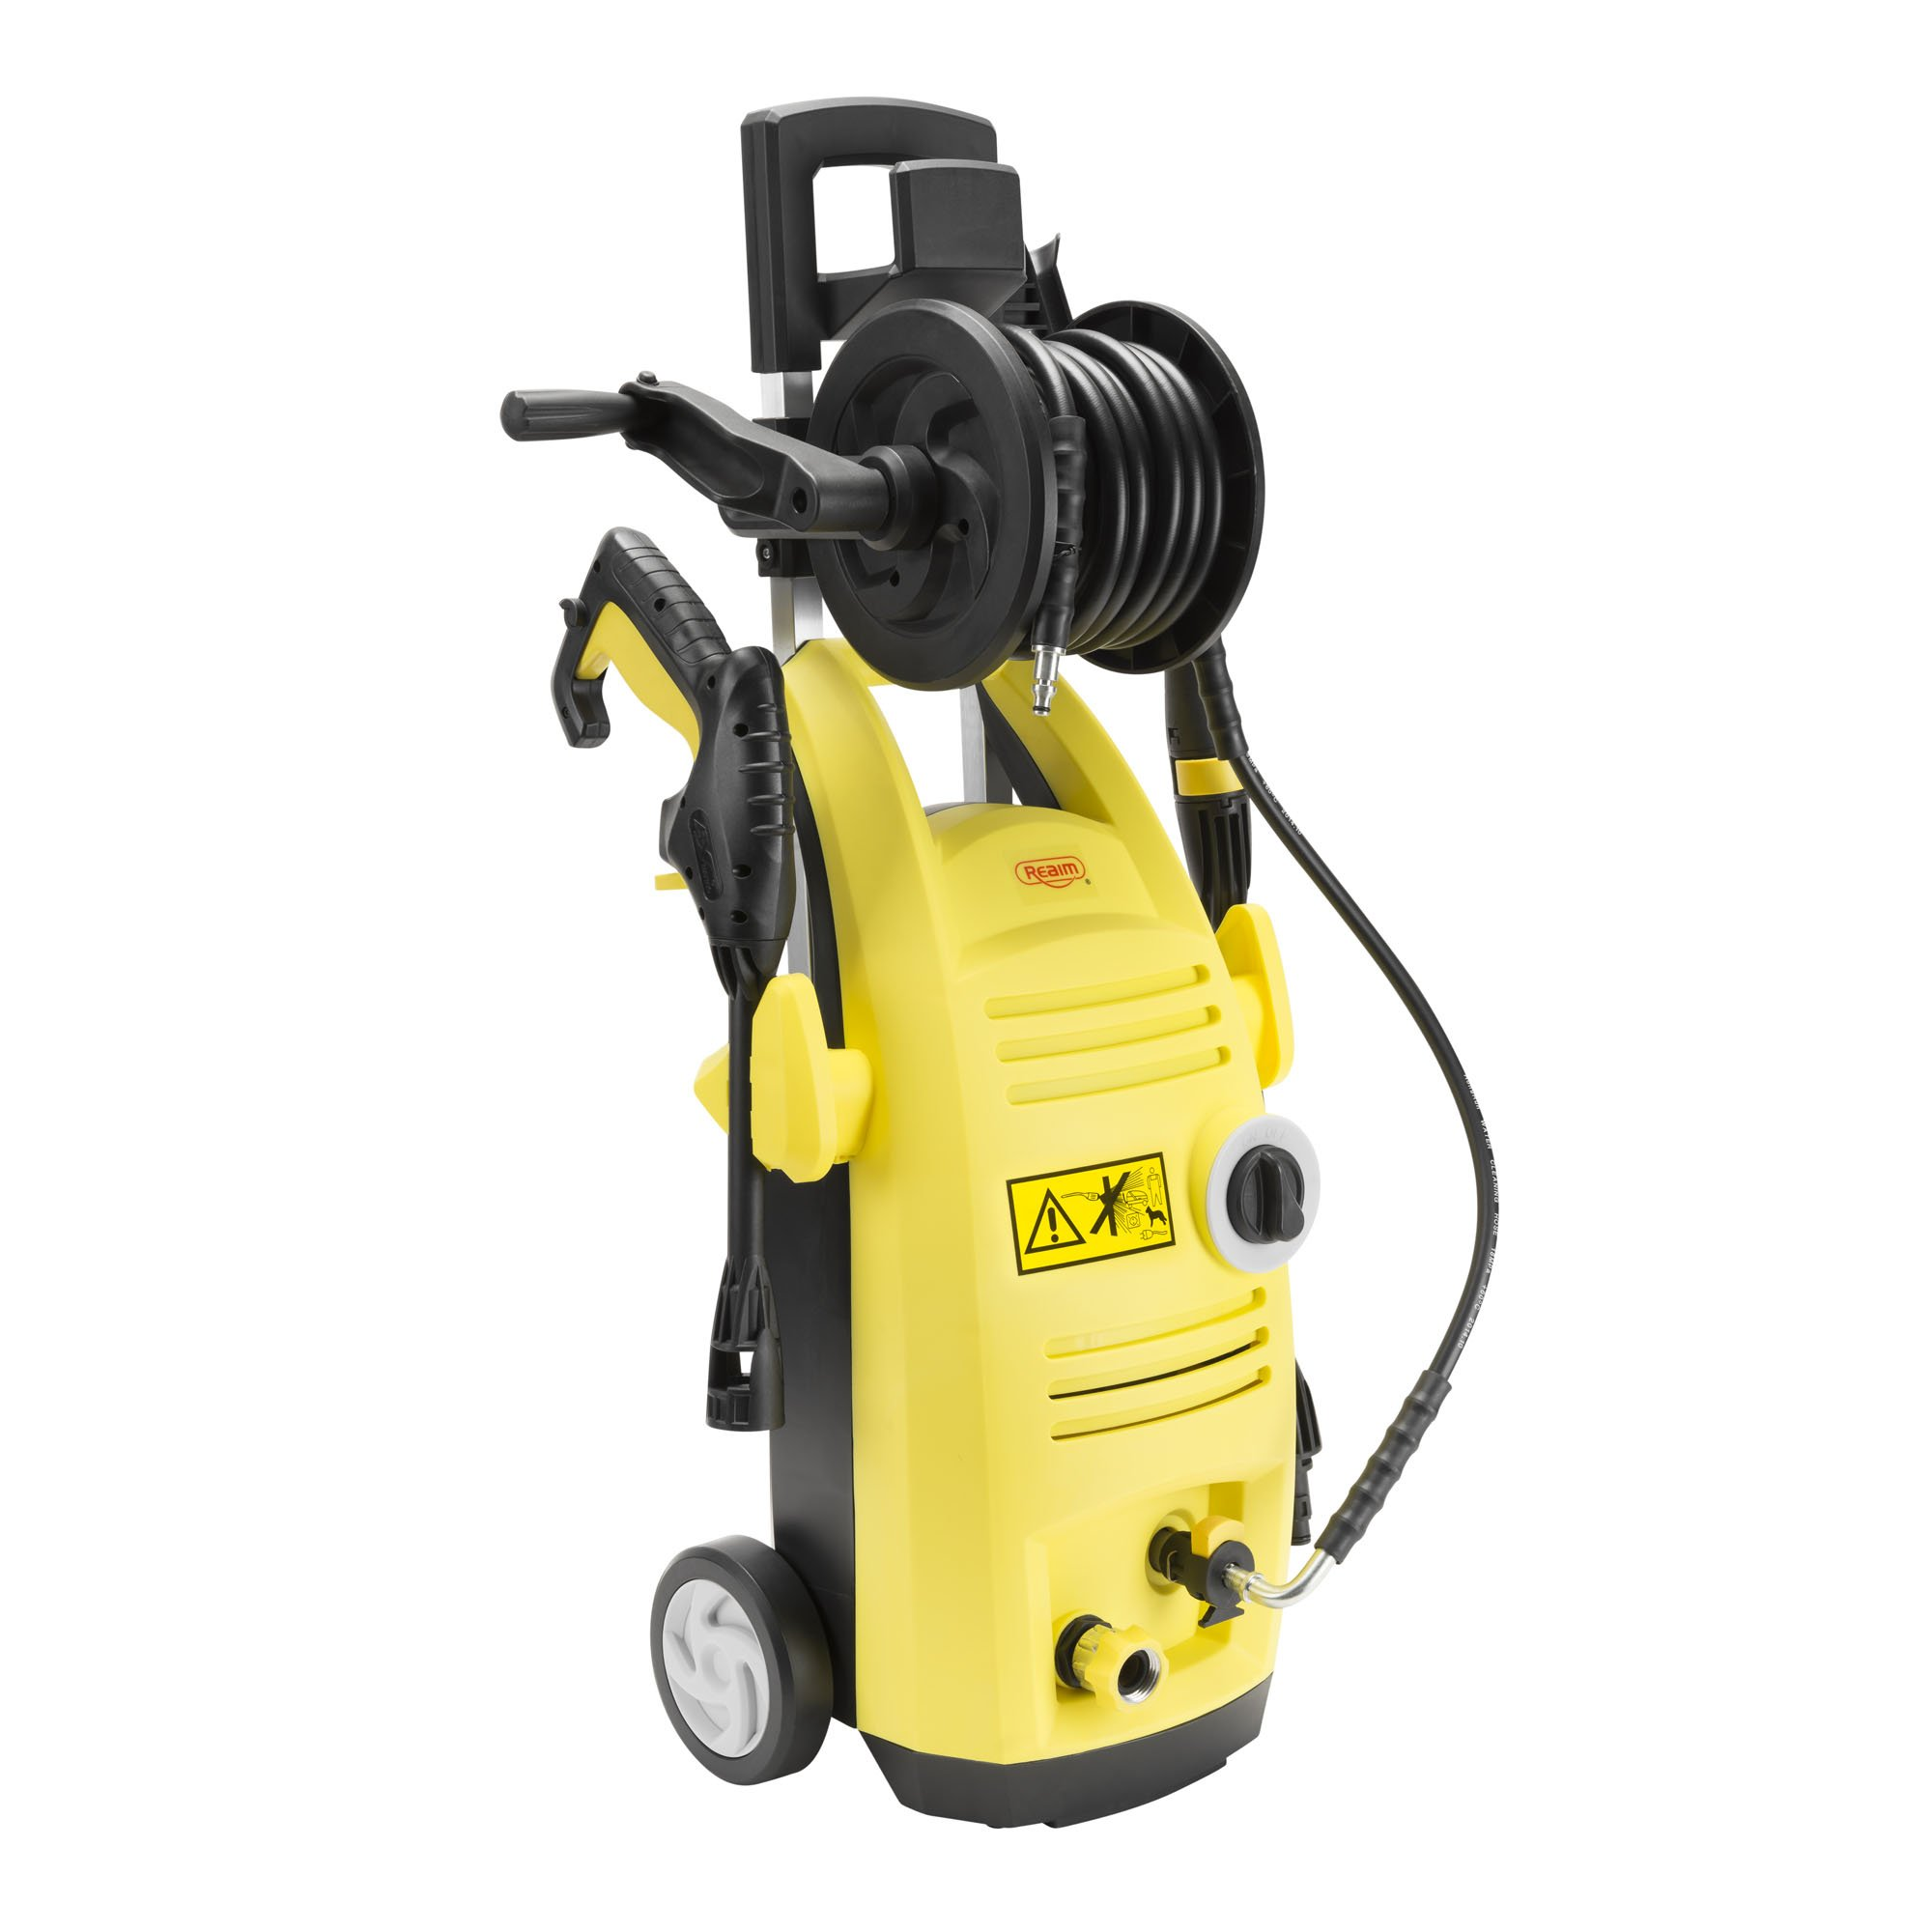 Realm BY01-VBS-WTR, Electric Pressure Washer with Hose Reel, 1500 PSI 1.60 GPM 13 Amp